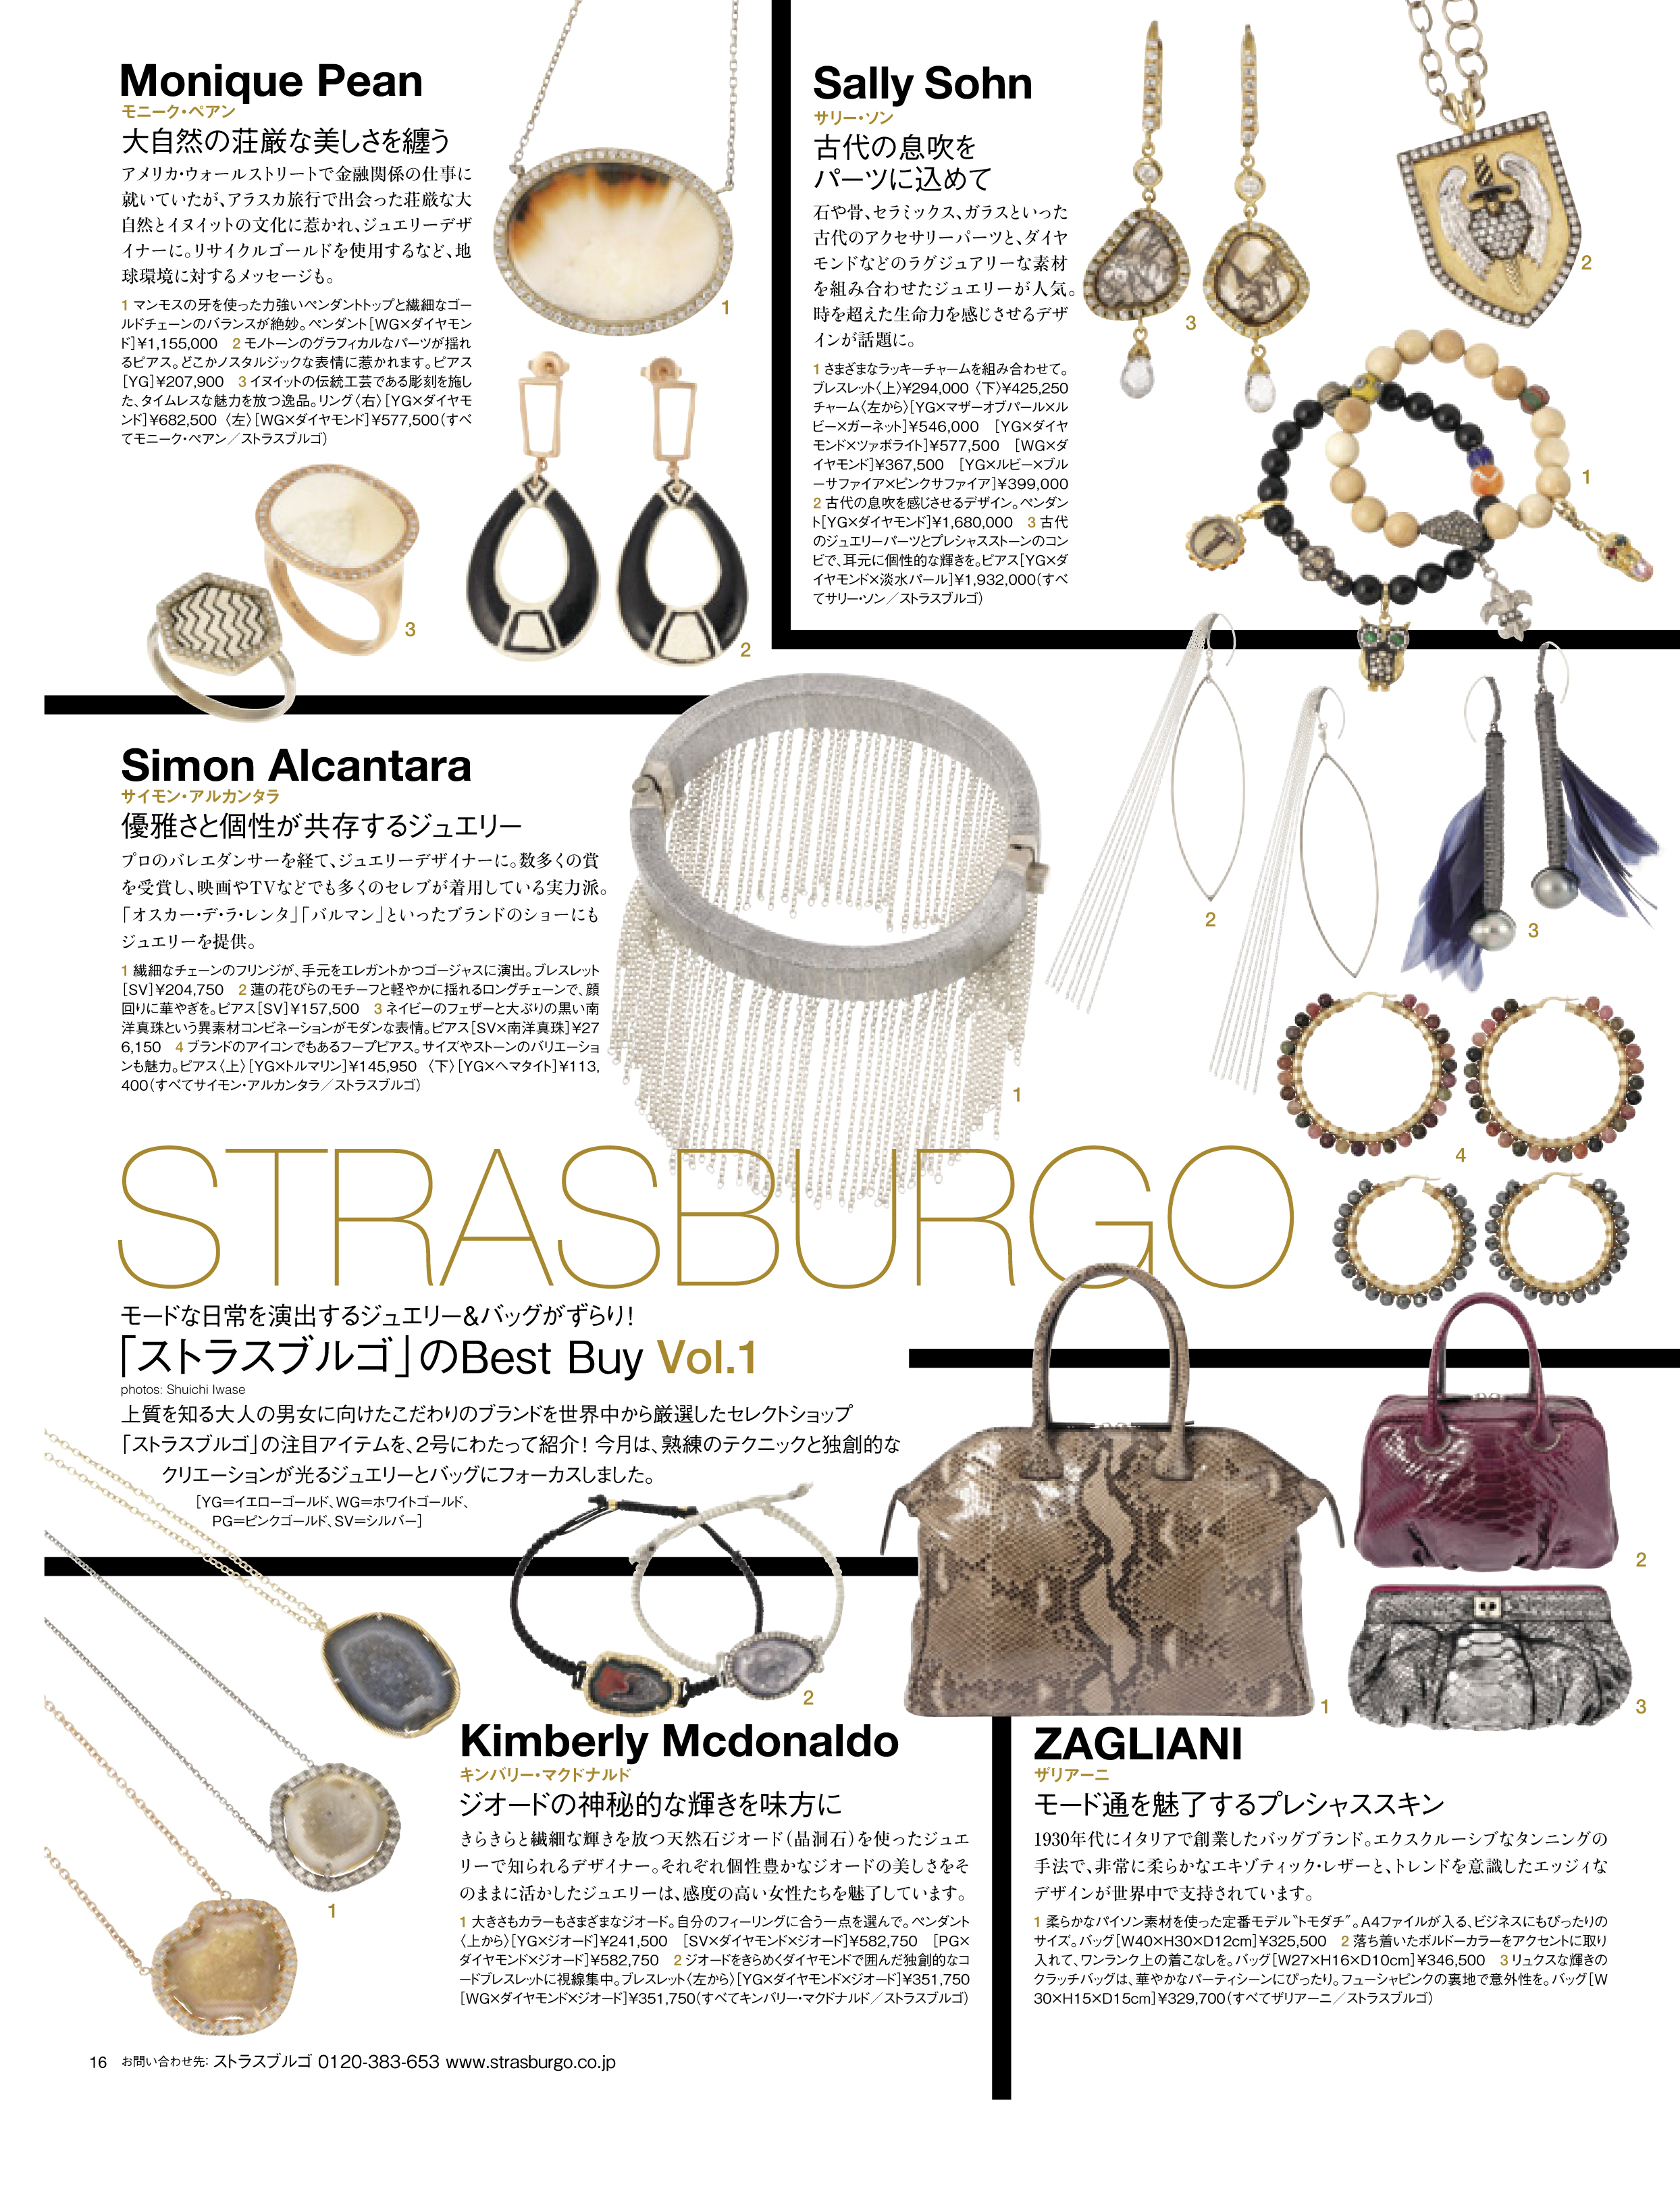 JAPAN MARIE CLAIRE STYLE DECEMBER 2012.  TO PURCHASE THE SIMON ALCANTARA'S JEWELRY IN JAPAN PLEASE FOLLLOW THIS LINK Strasburgo